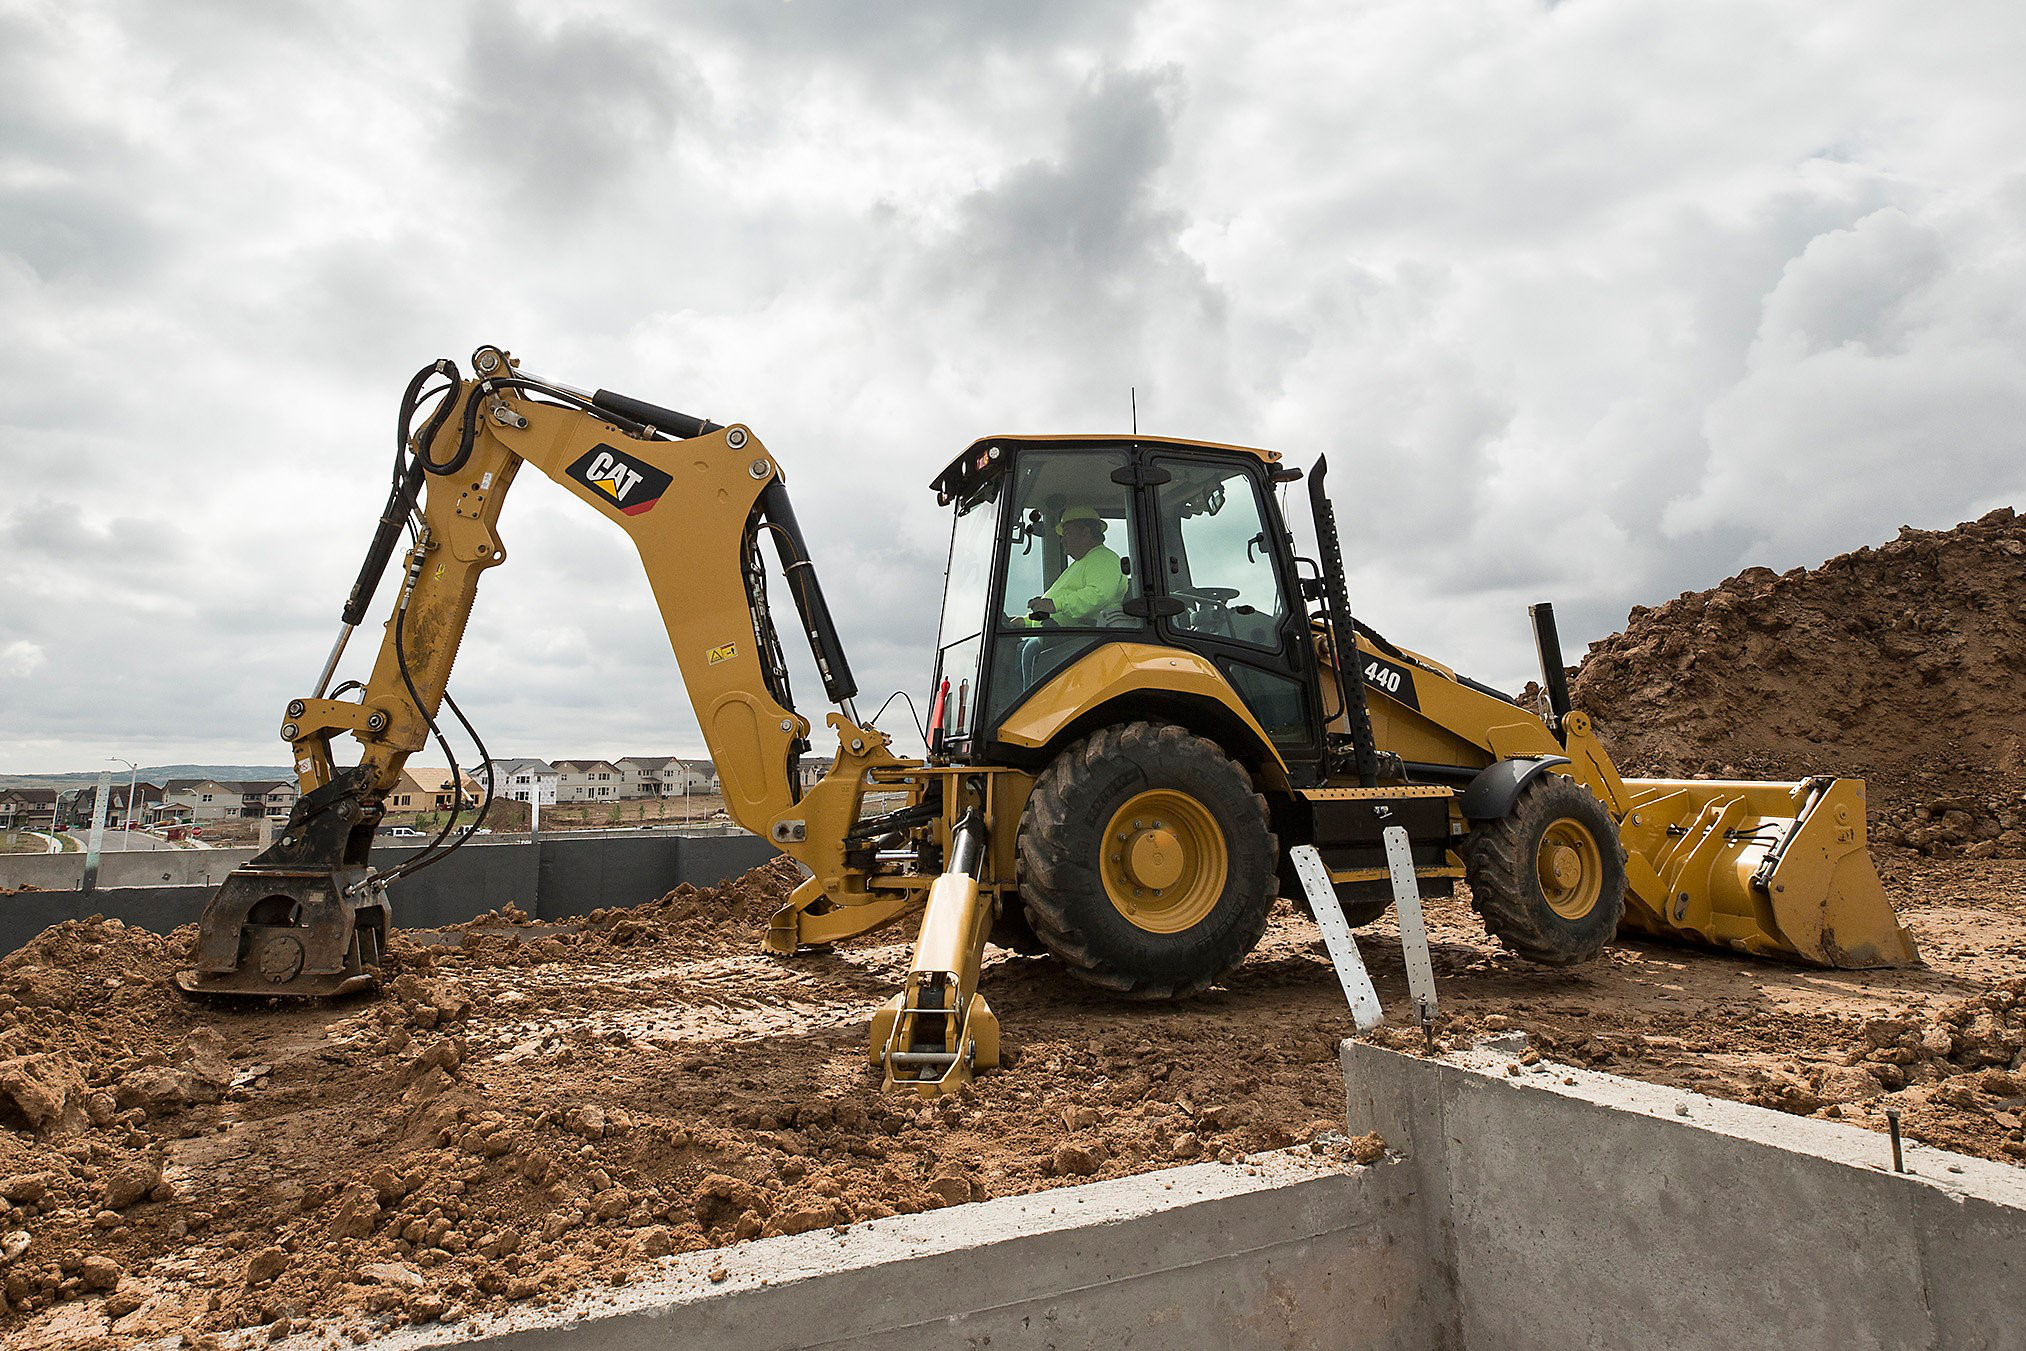 Design offers good load control to Cat's 440, 450 backhoes